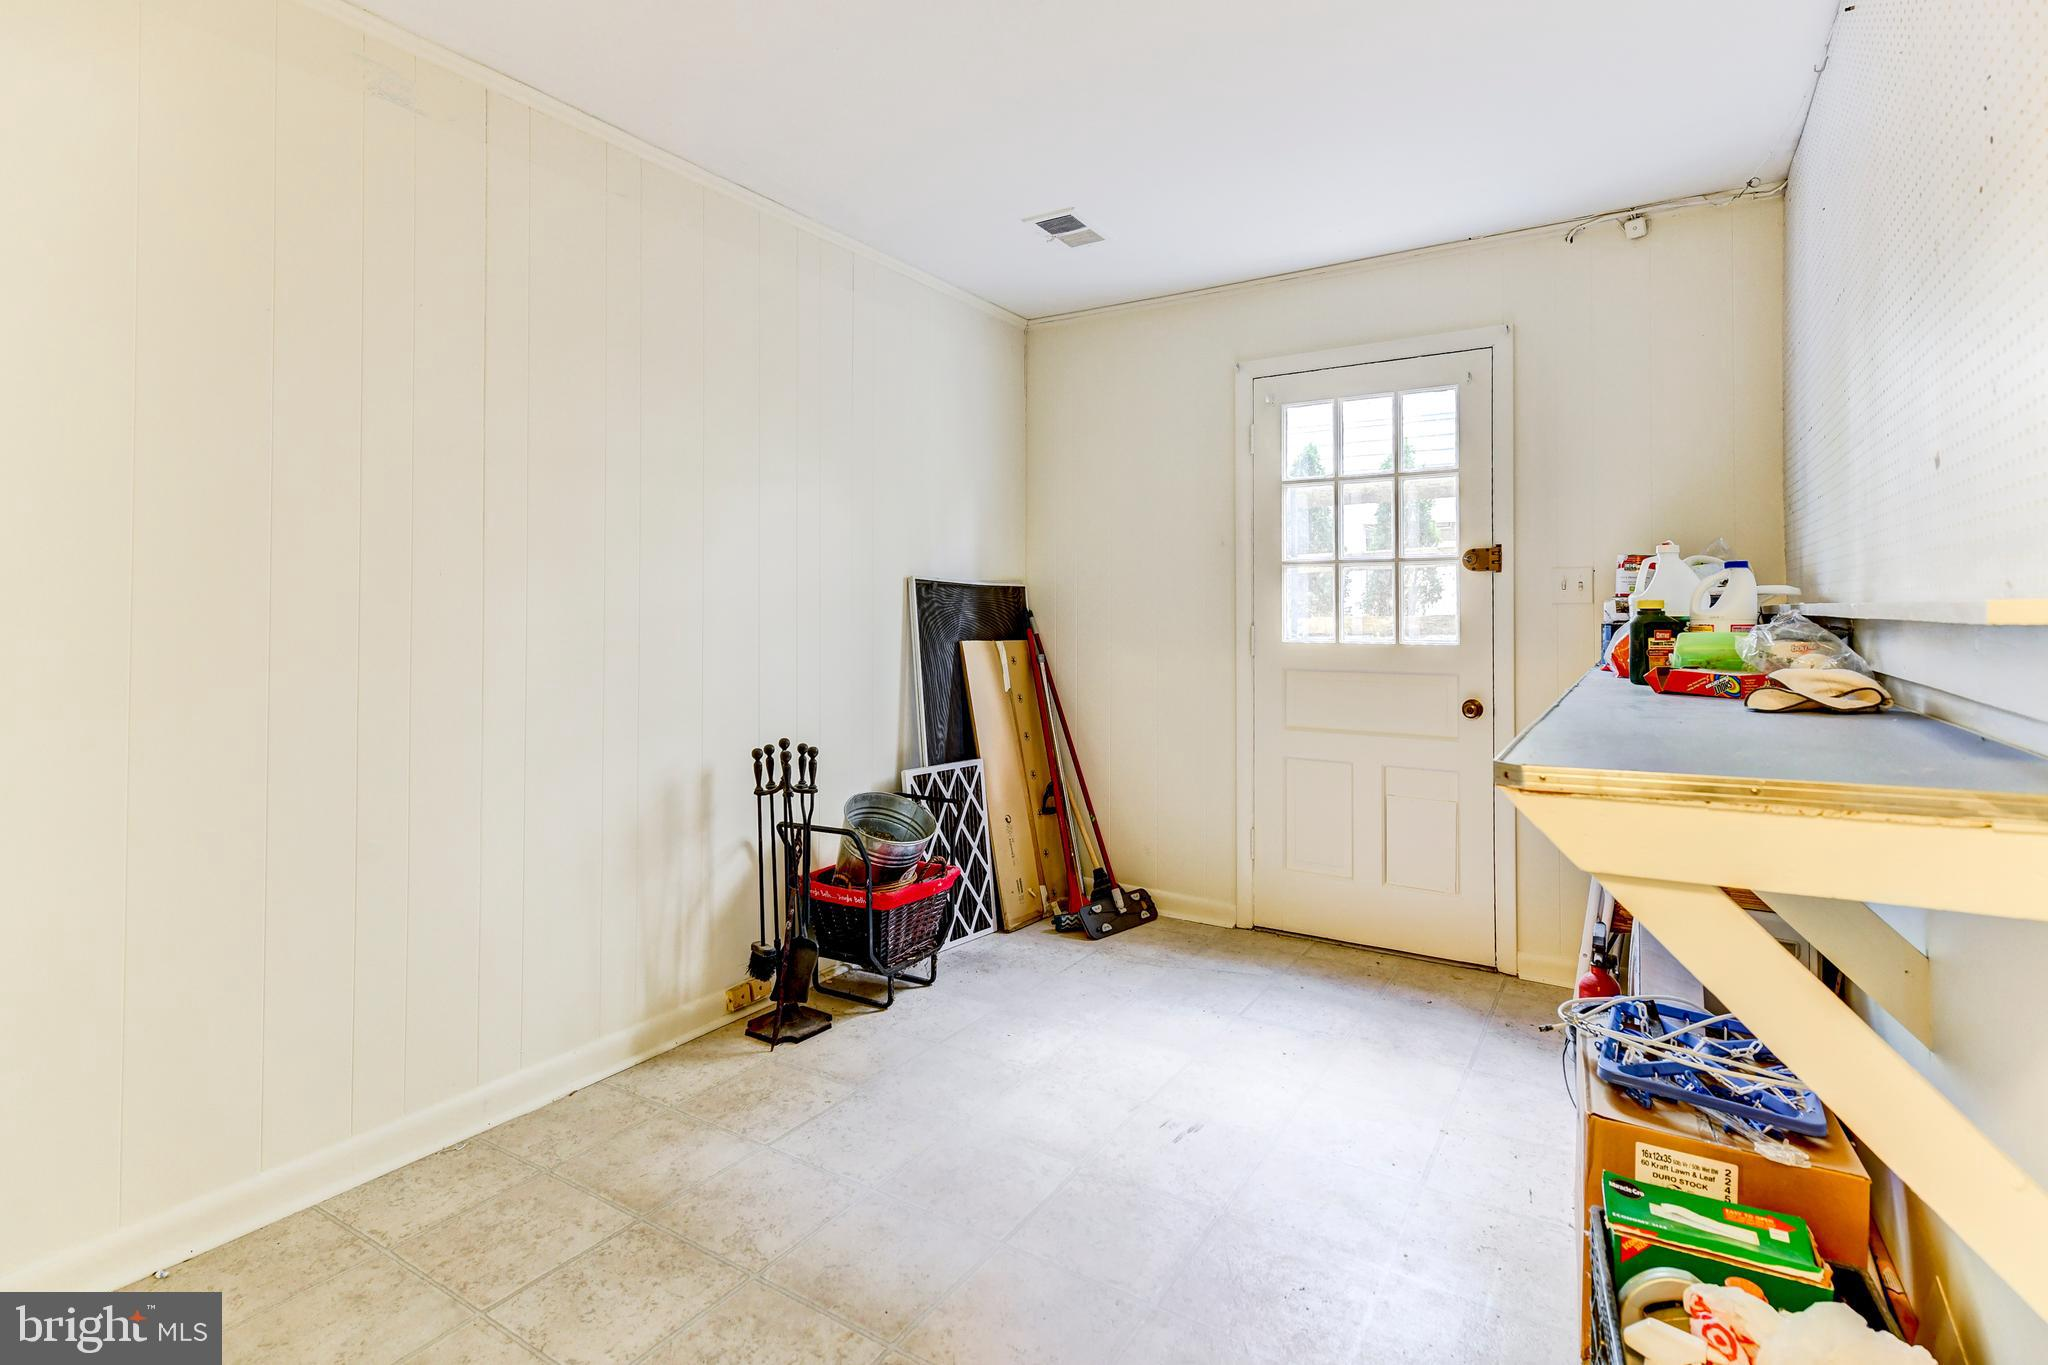 7314 DELFIELD ST, Chevy Chase, MD 20815 Chevy Chase MD ...